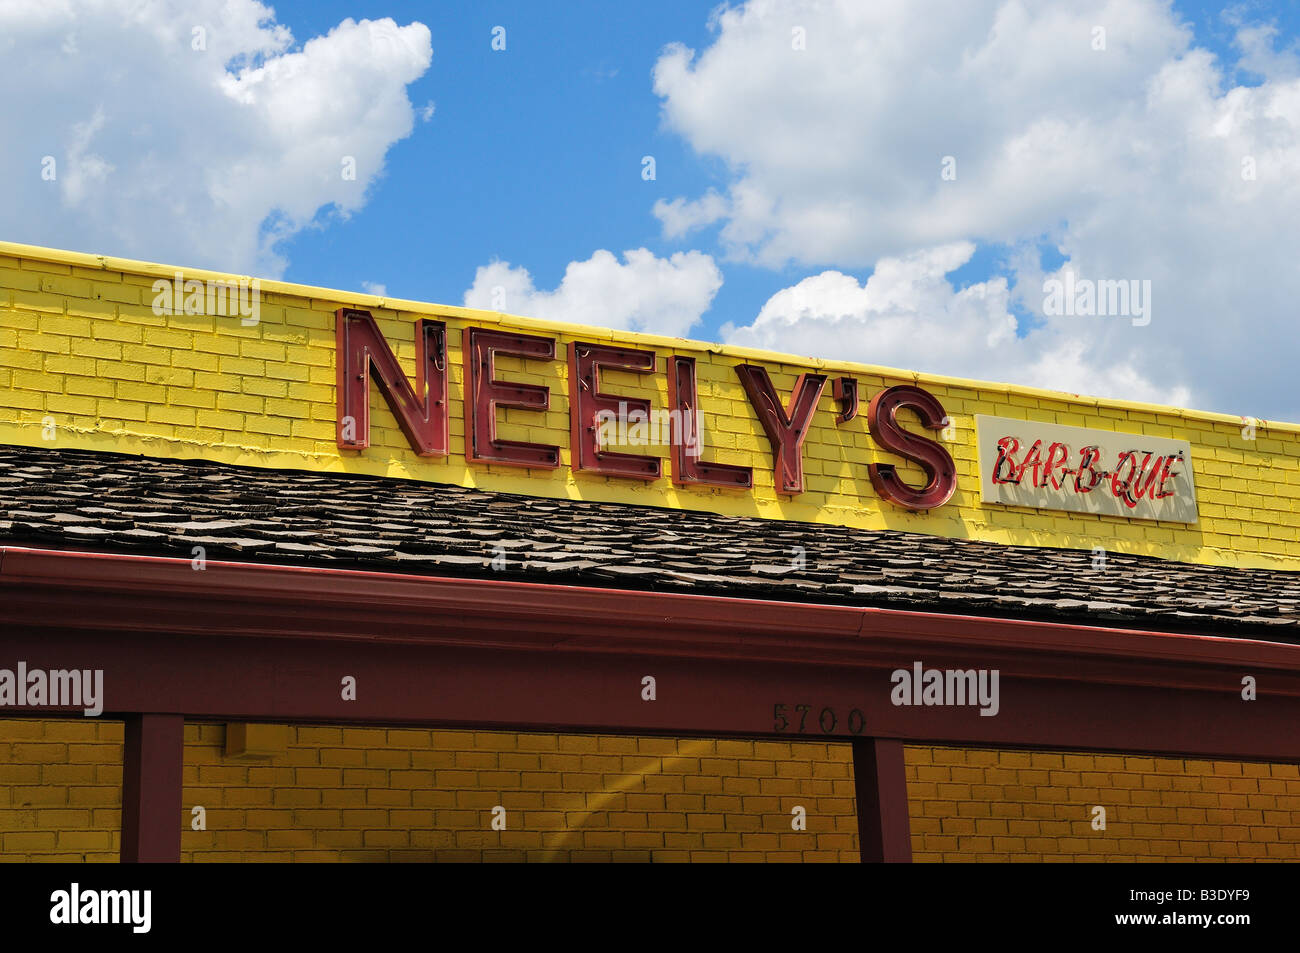 Exterior of Neely's Bar-B-Que Restaurant in Memphis, Tennessee, United States, North America. - Stock Image